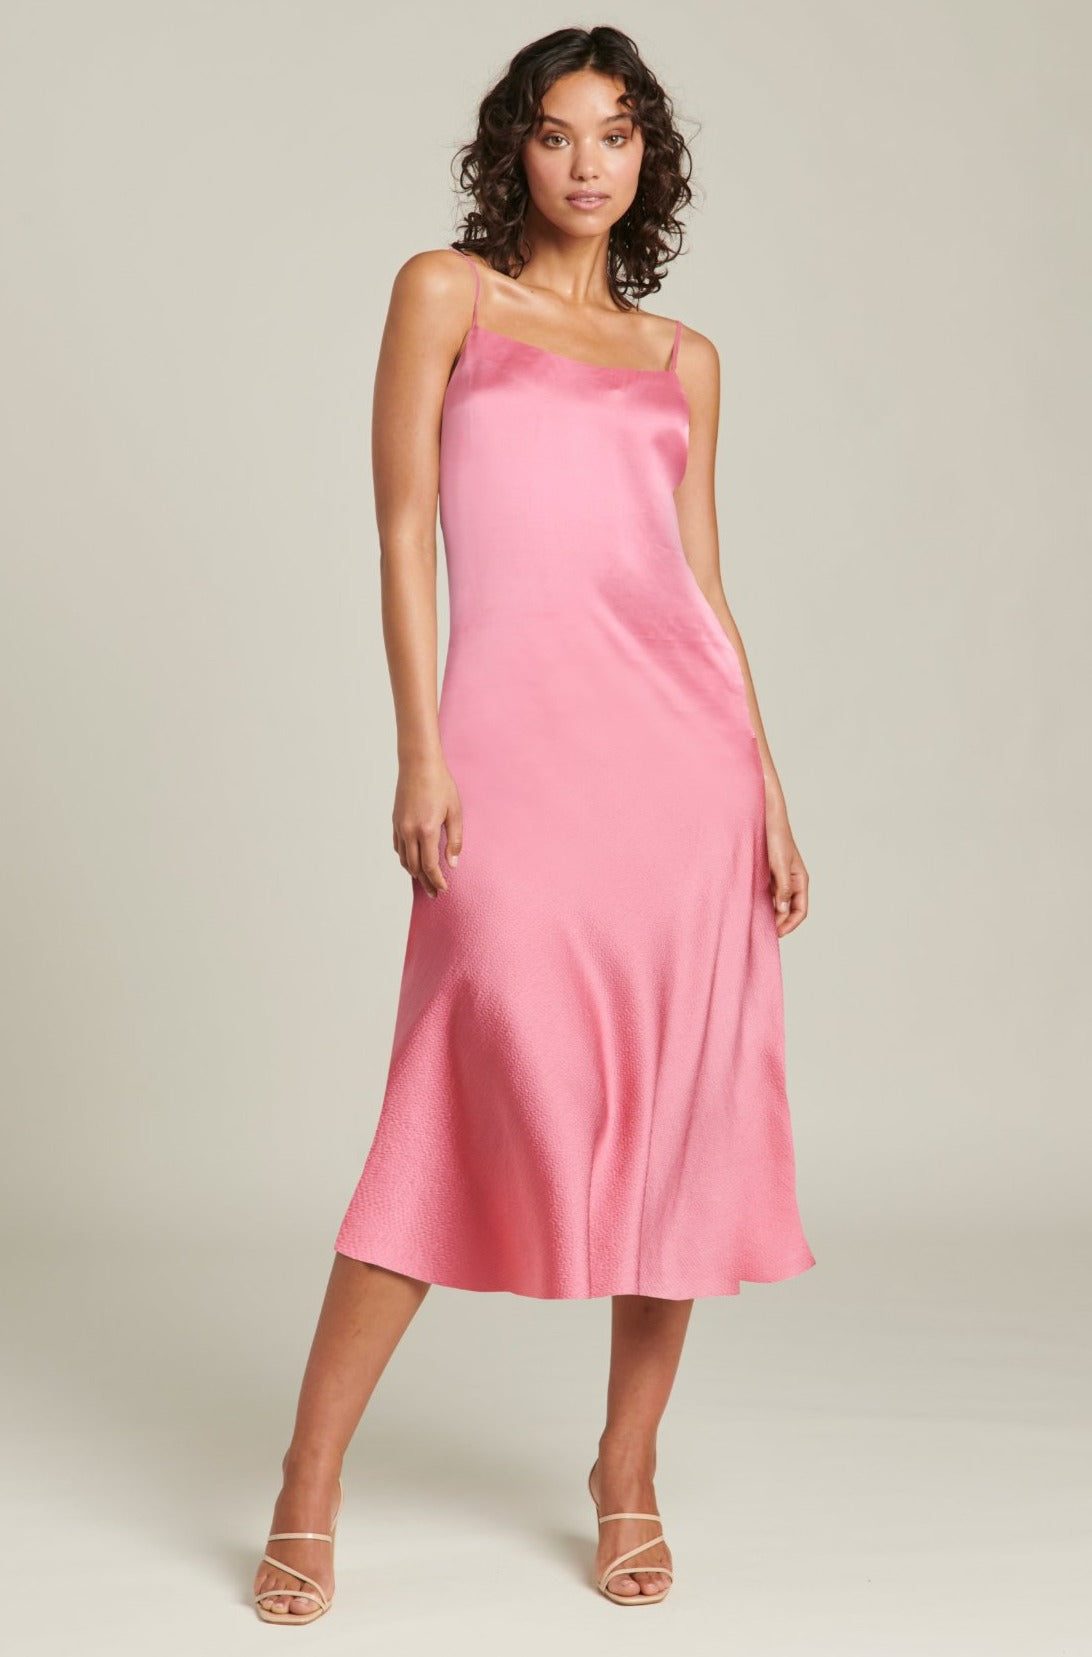 Pink Carnation Blaire Slip Dress